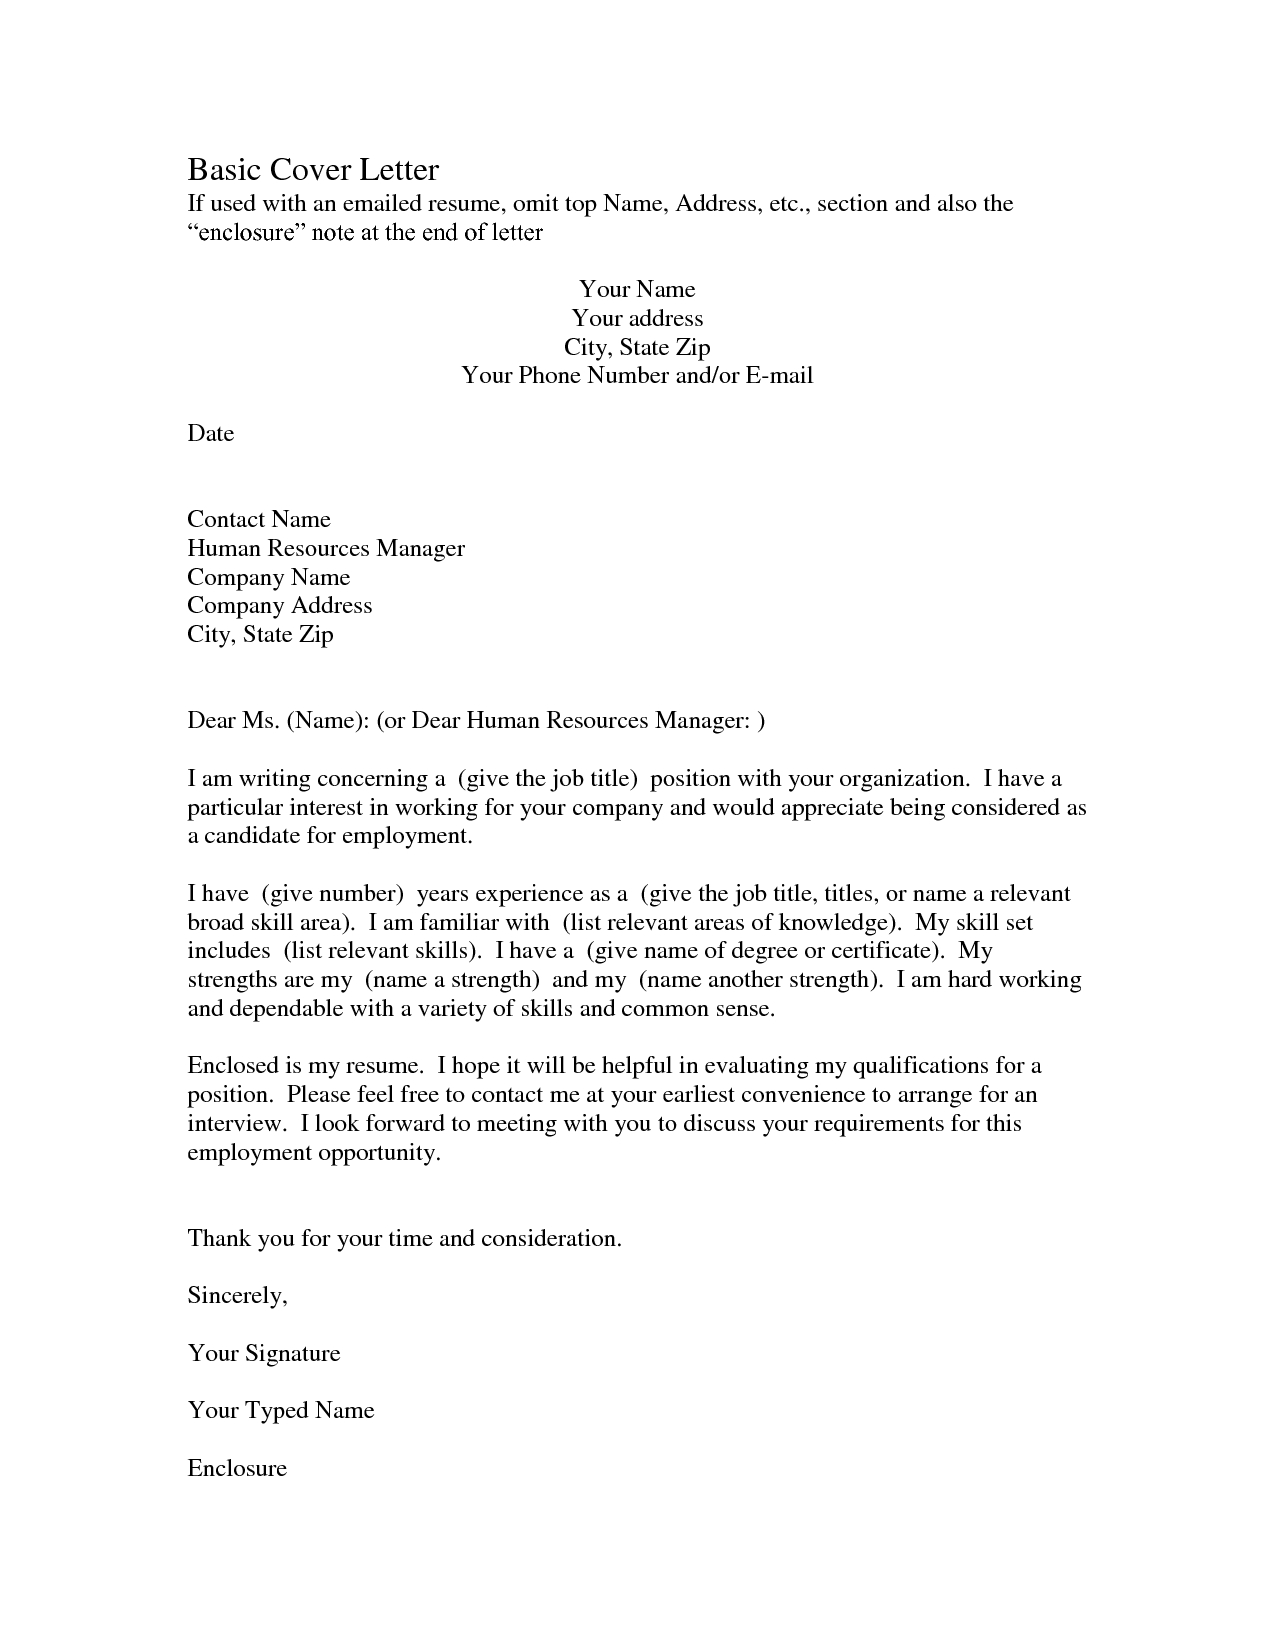 Late Payment Dispute Letter Template - This Cover Letter Sample Shows How A Resumes for Teachers Can Help